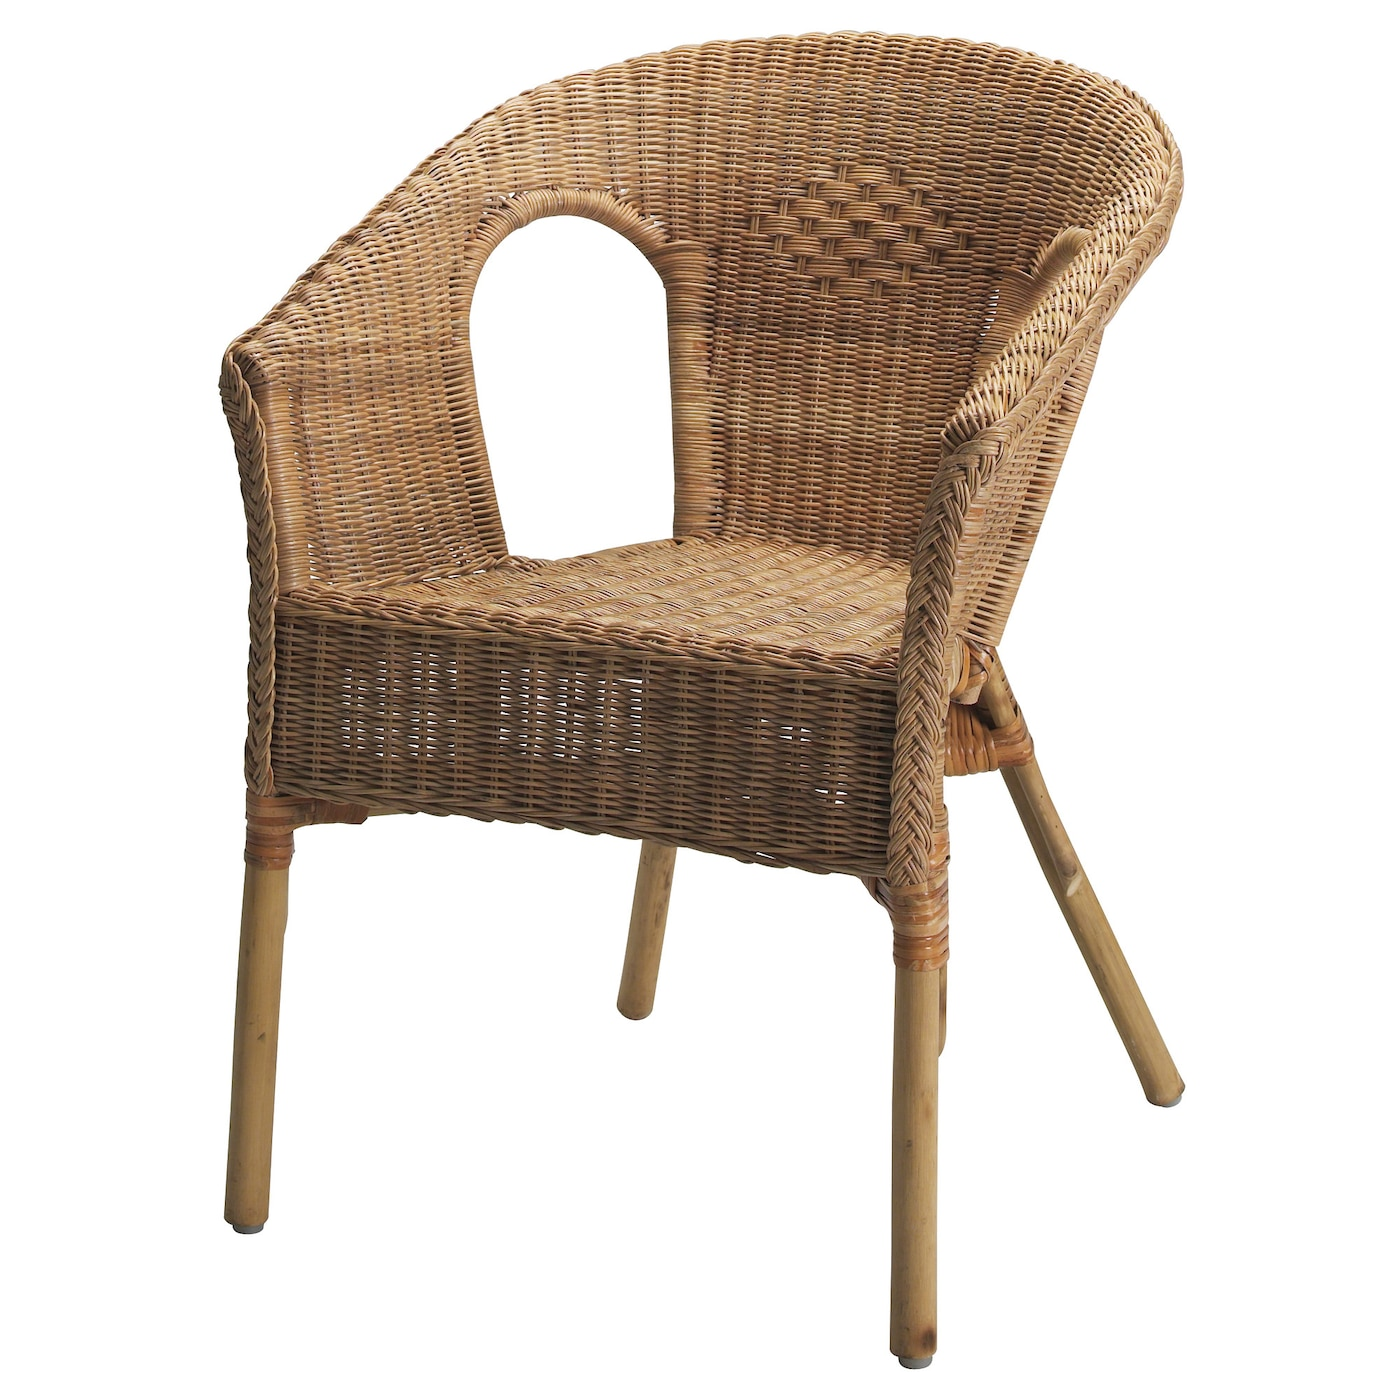 Basket chair ikea -